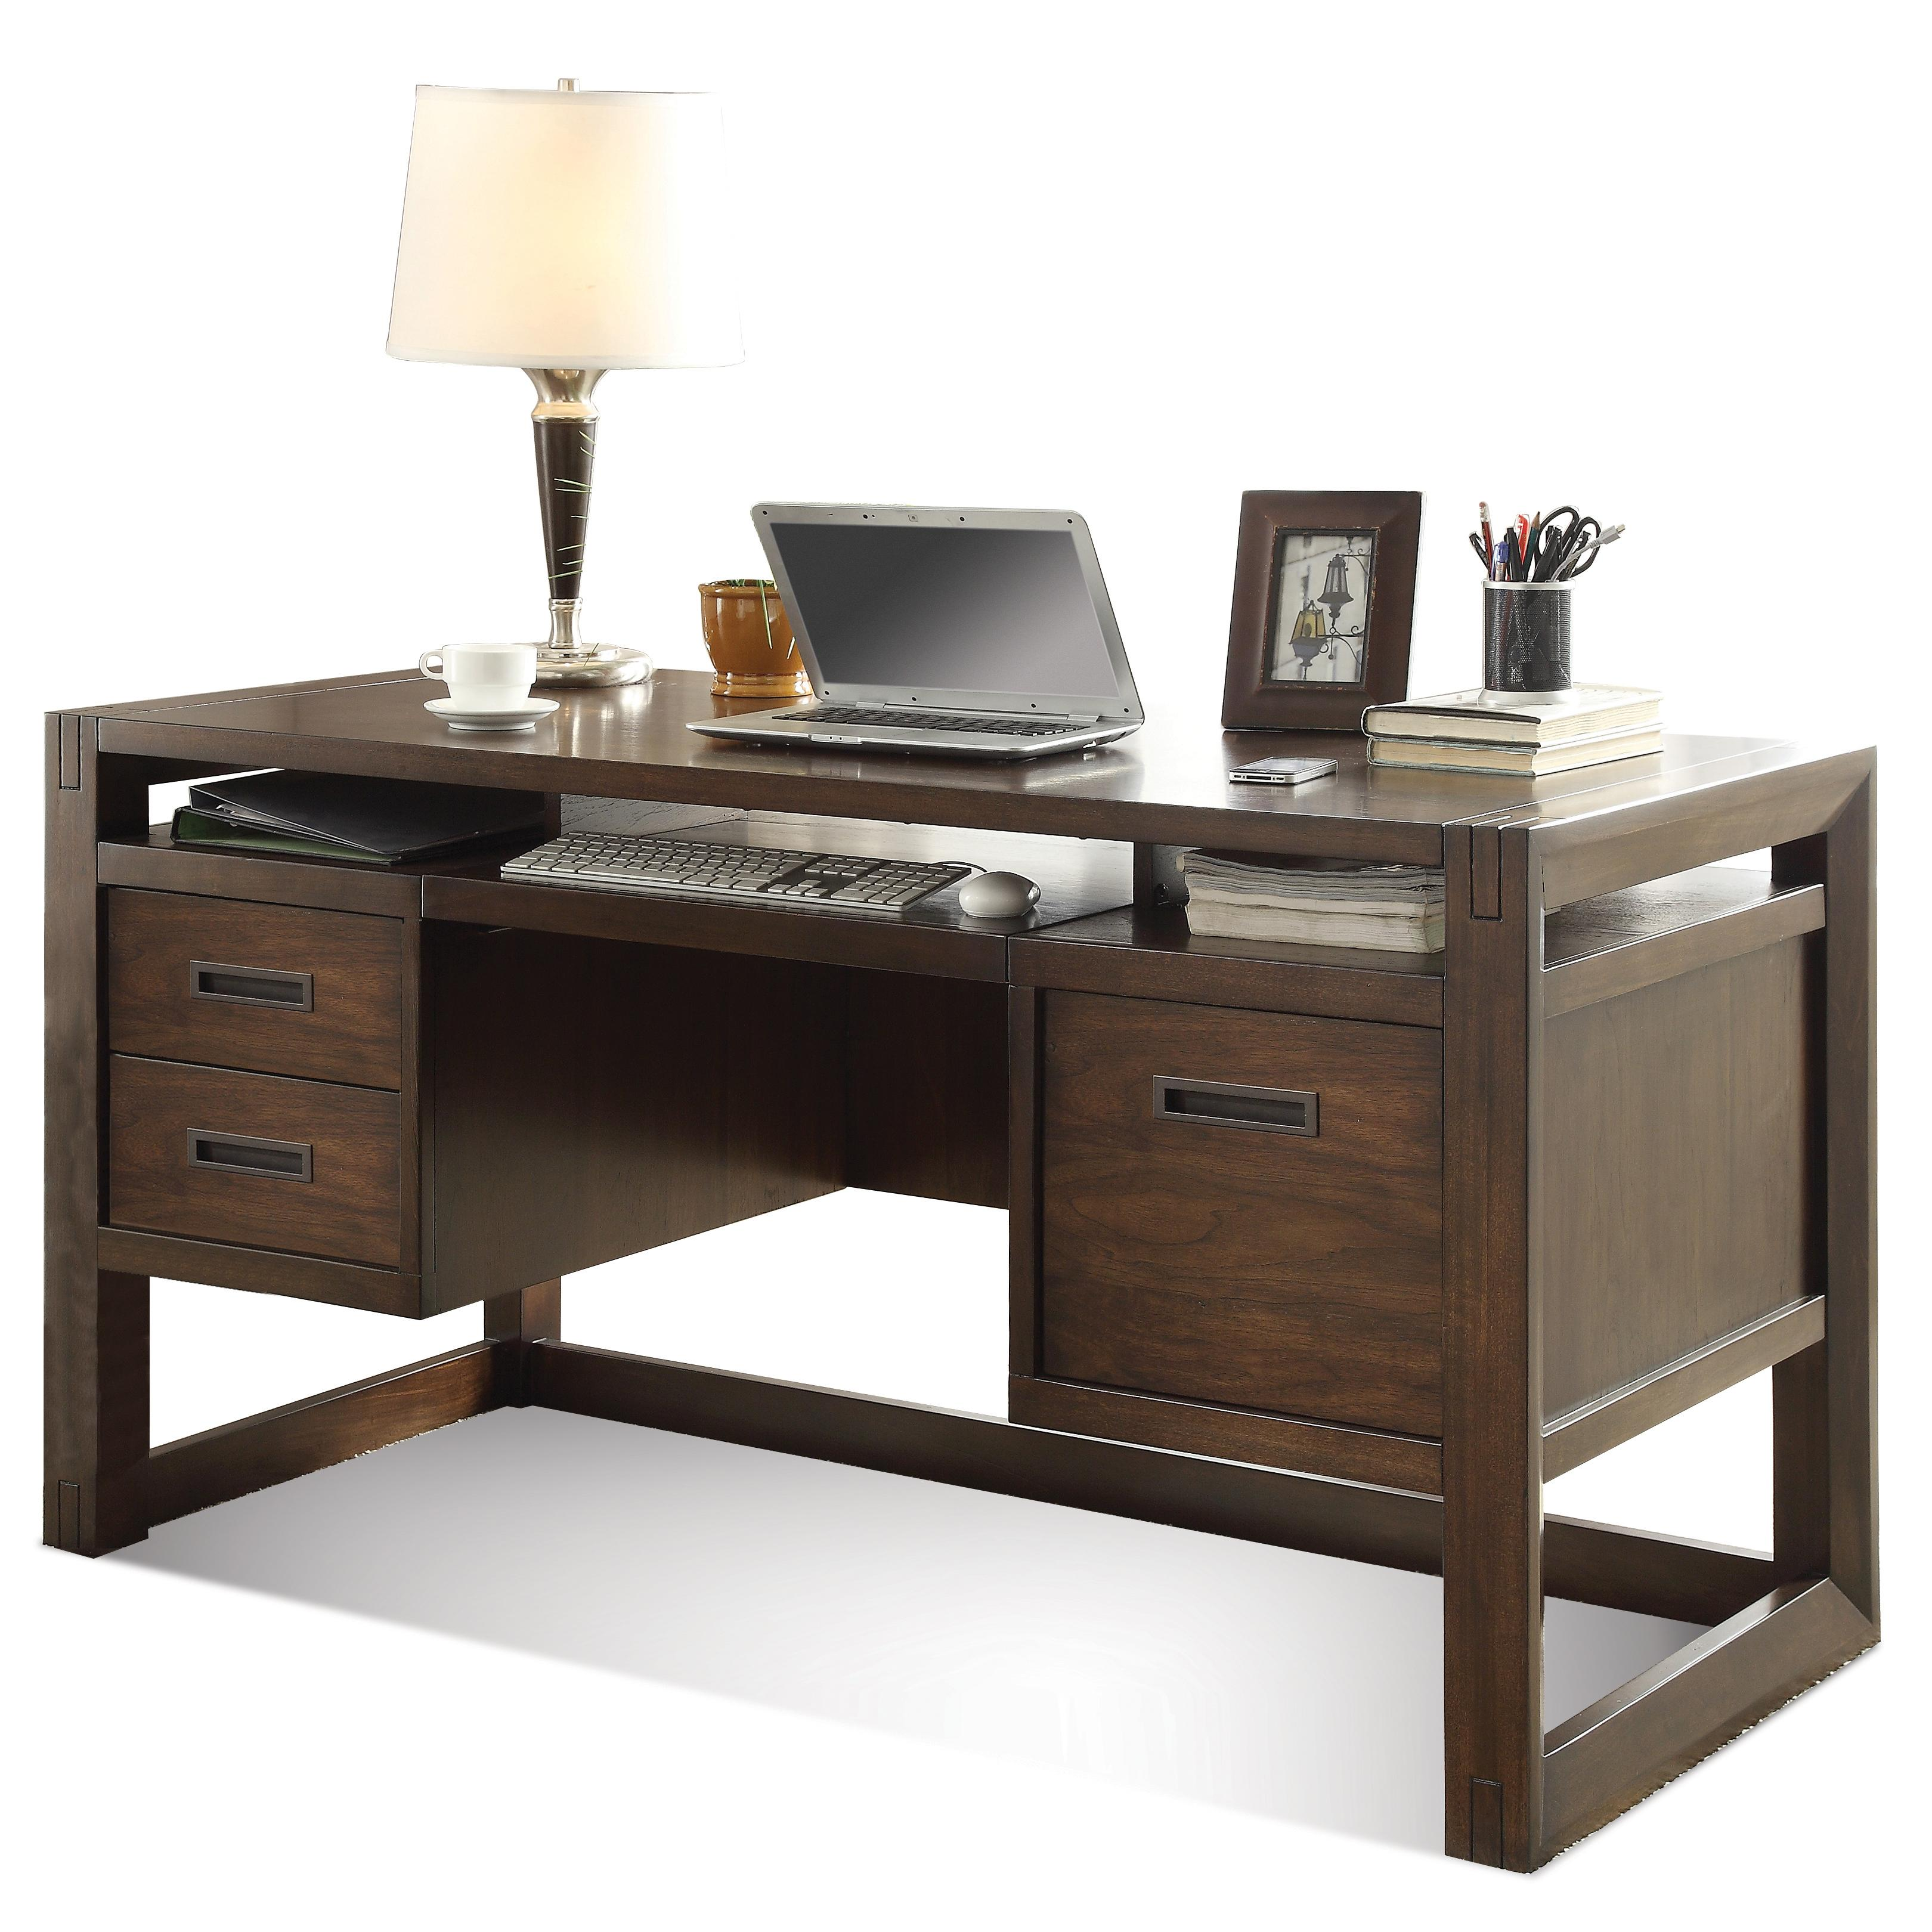 Riverside Furniture Riata Computer Desk   Item Number: 75831